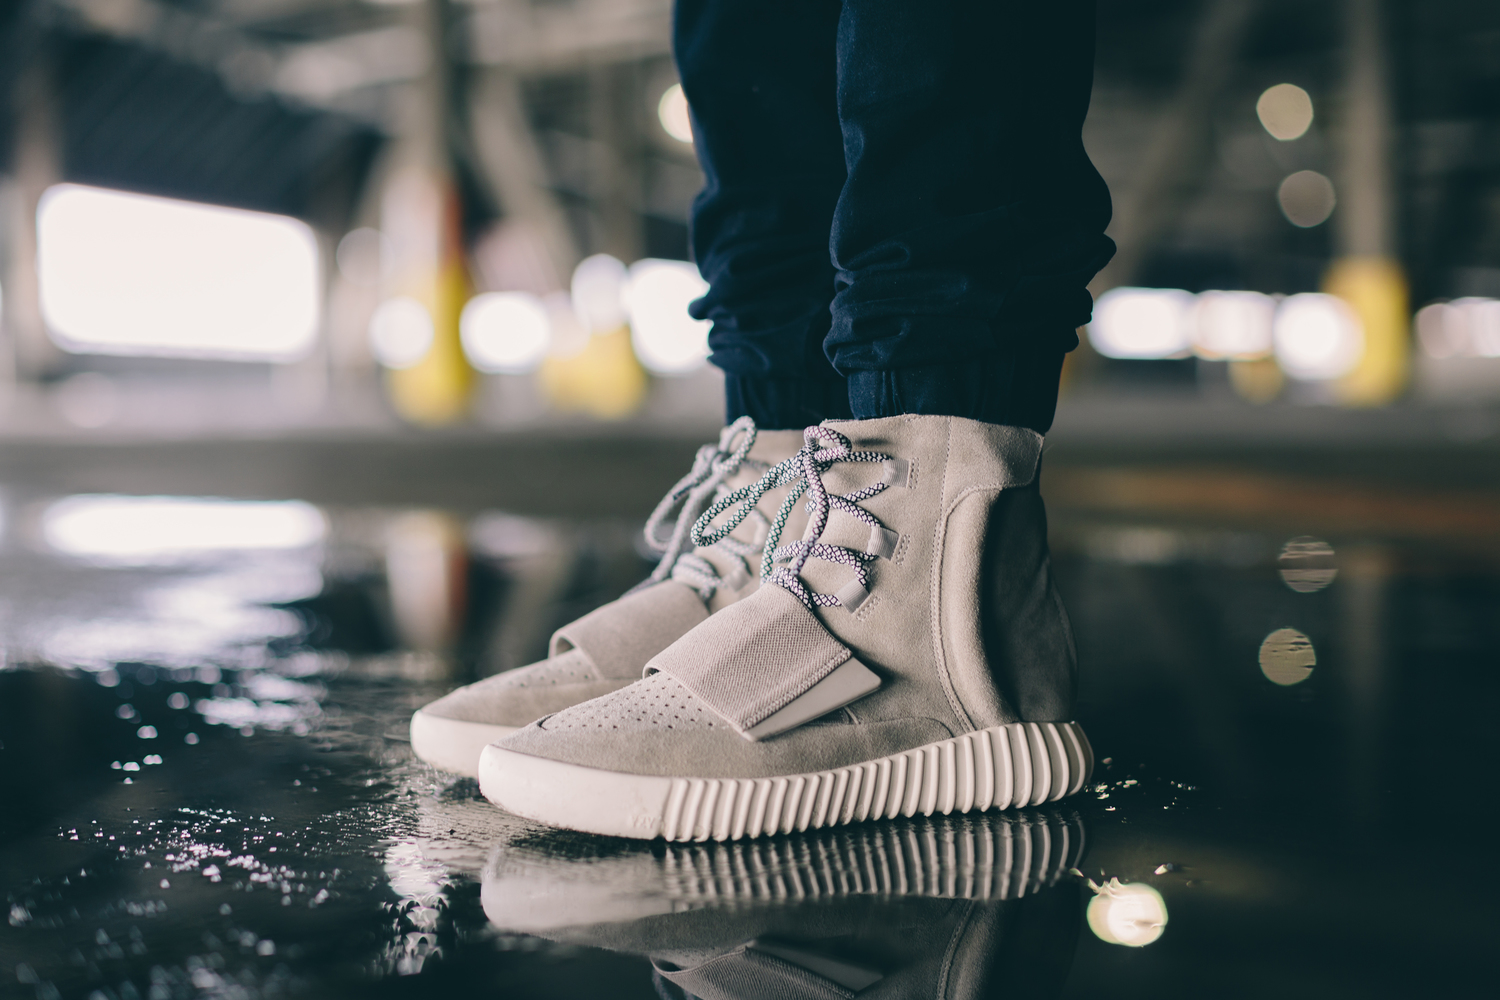 new concept 97585 4fff8 On Foot Look at the Adidas Yeezy 750 Boost + Sizing Info — Sneaker Shouts